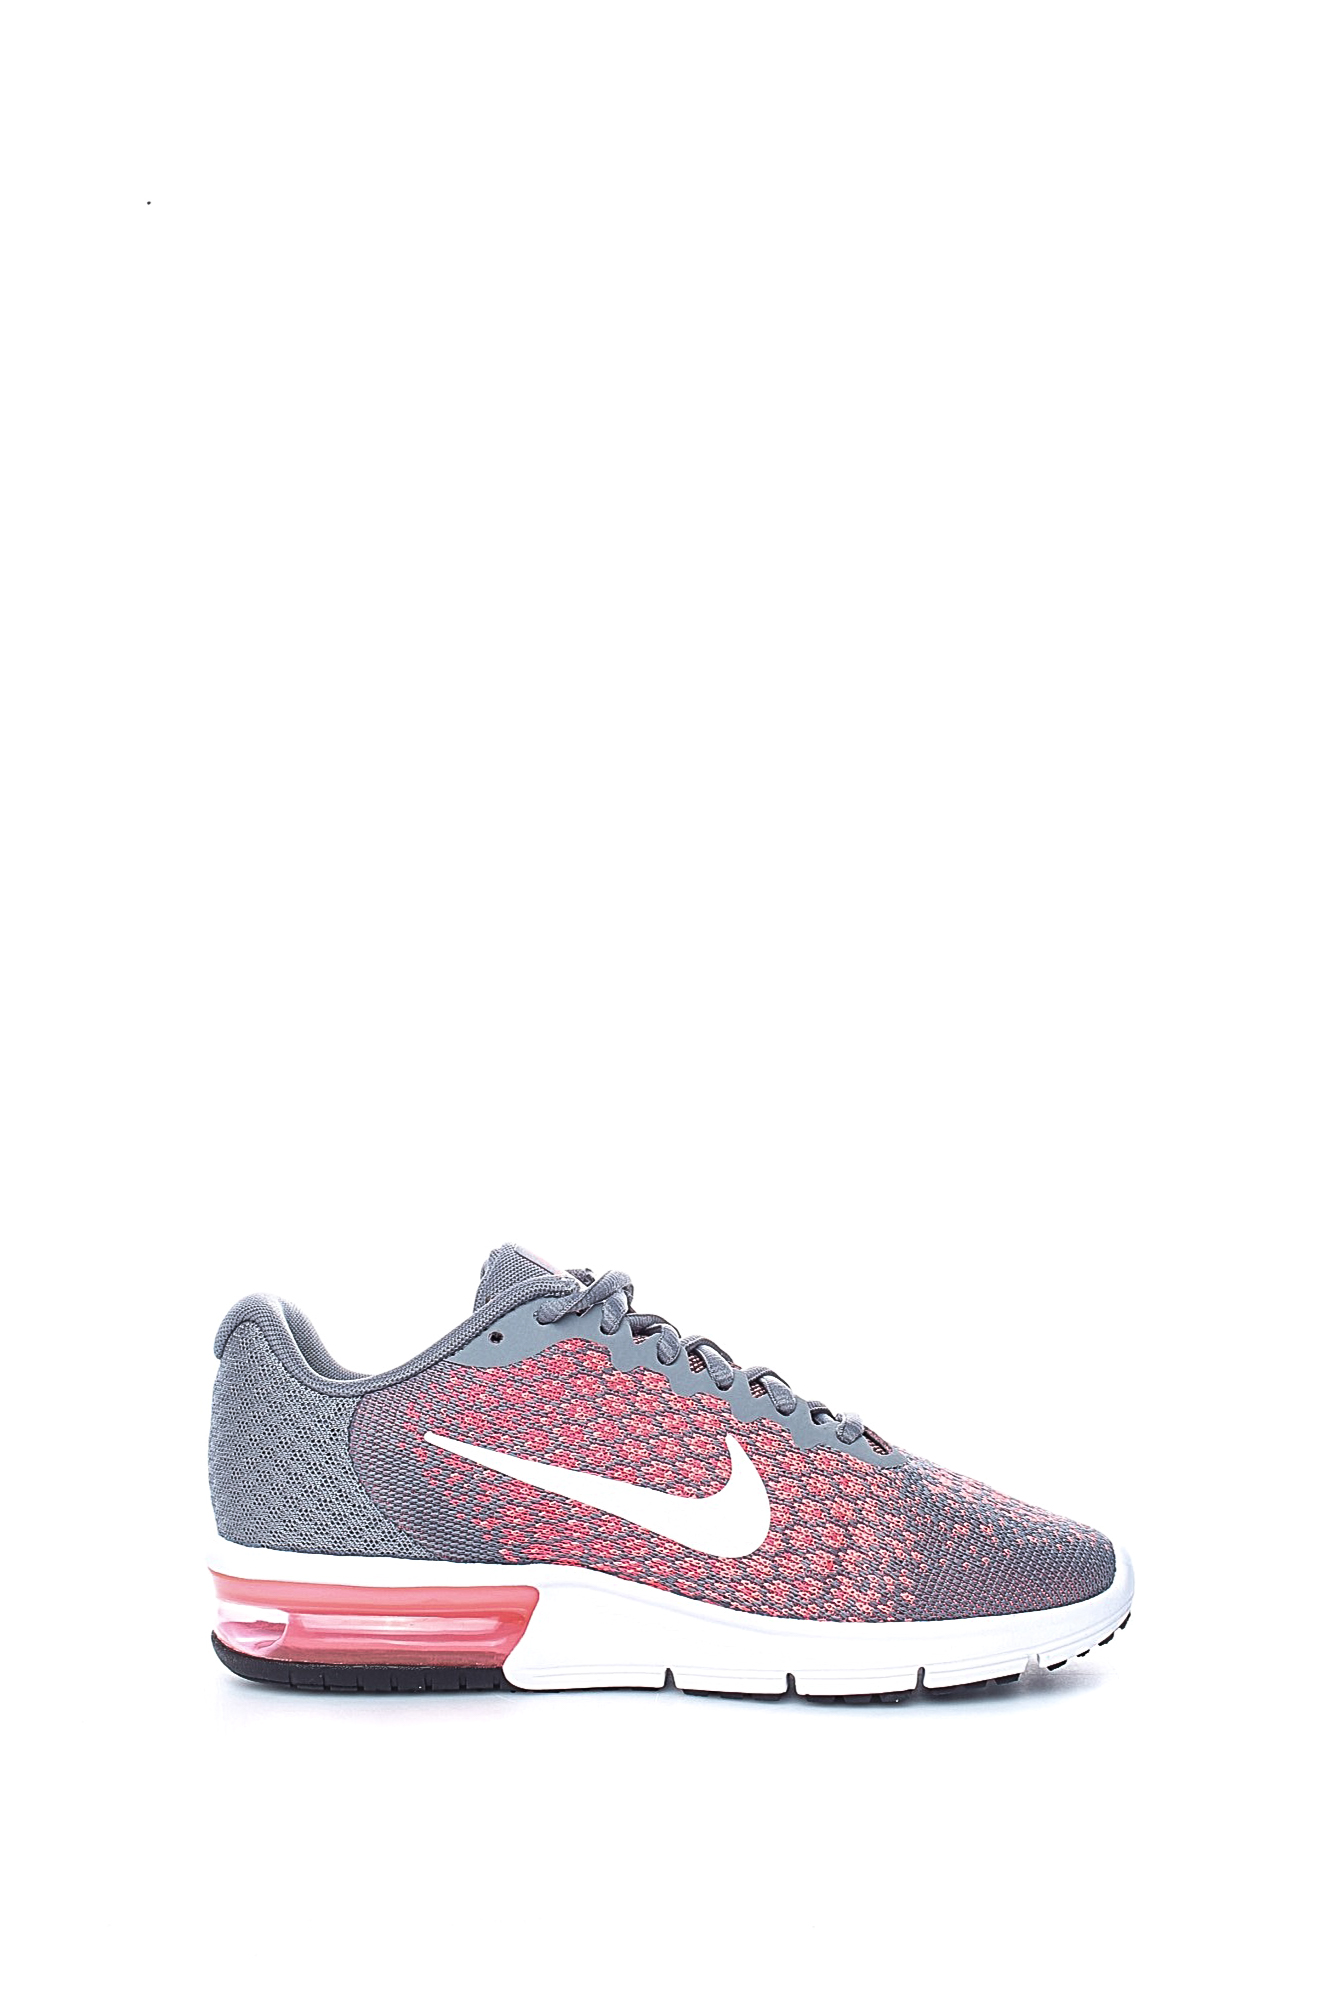 NIKE - Γυναικεία αθλητικά παπούτσια Nike AIR MAX SEQUENT 2 γκρι - ροζ γυναικεία παπούτσια αθλητικά running